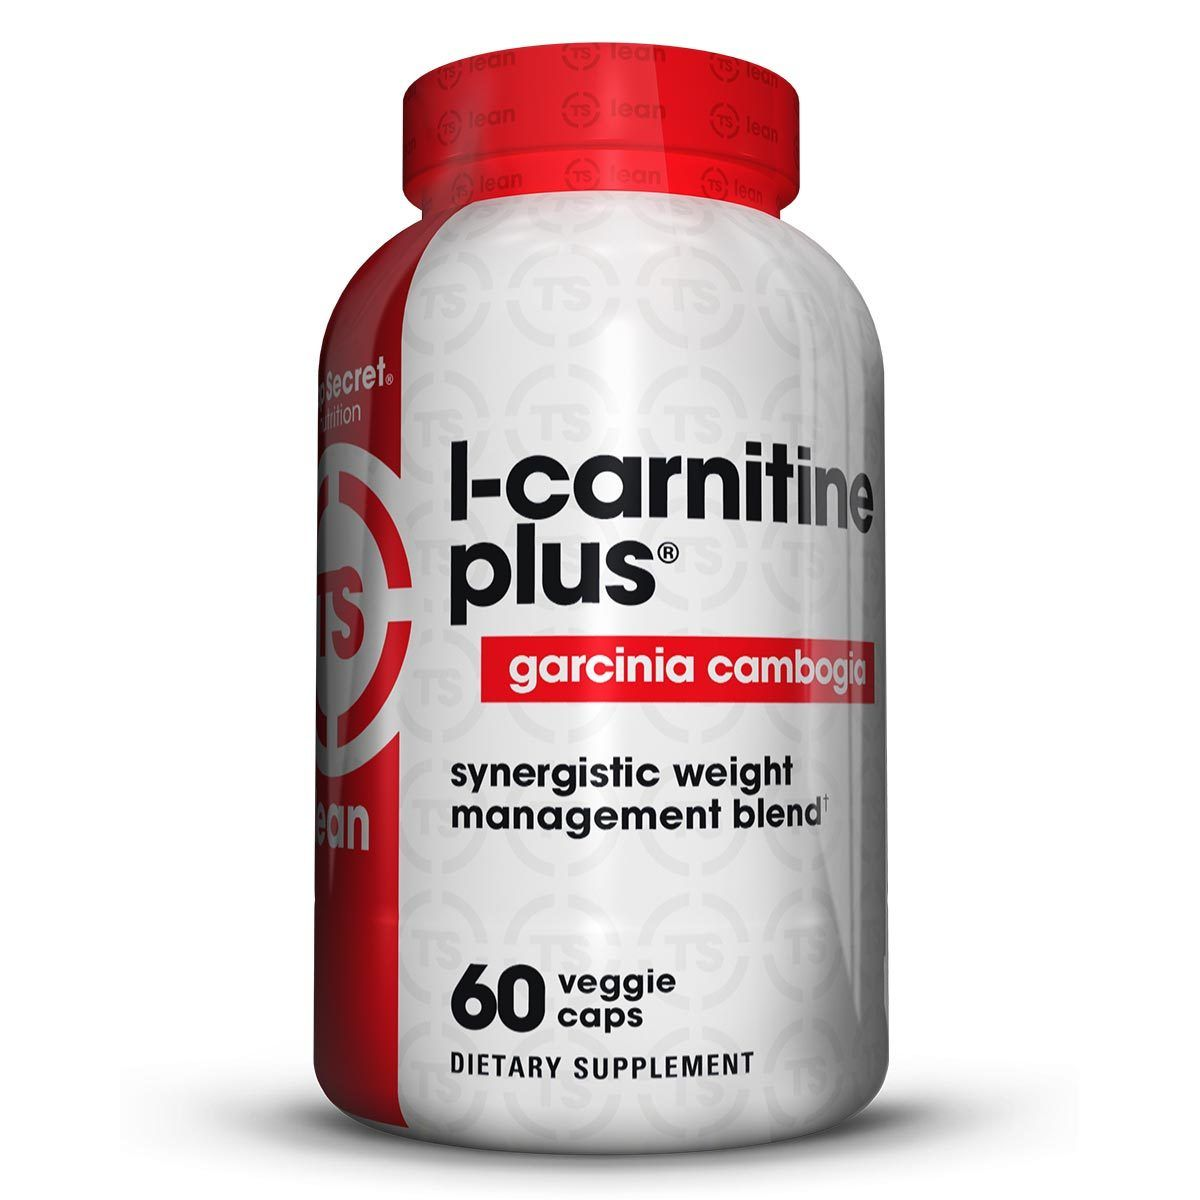 Top Secret Nutrition L-Carnitine Plus Garcinia Cambogia 60 Caps Diet/Energy TOP SECRET NUTRITION  (1059309420587)